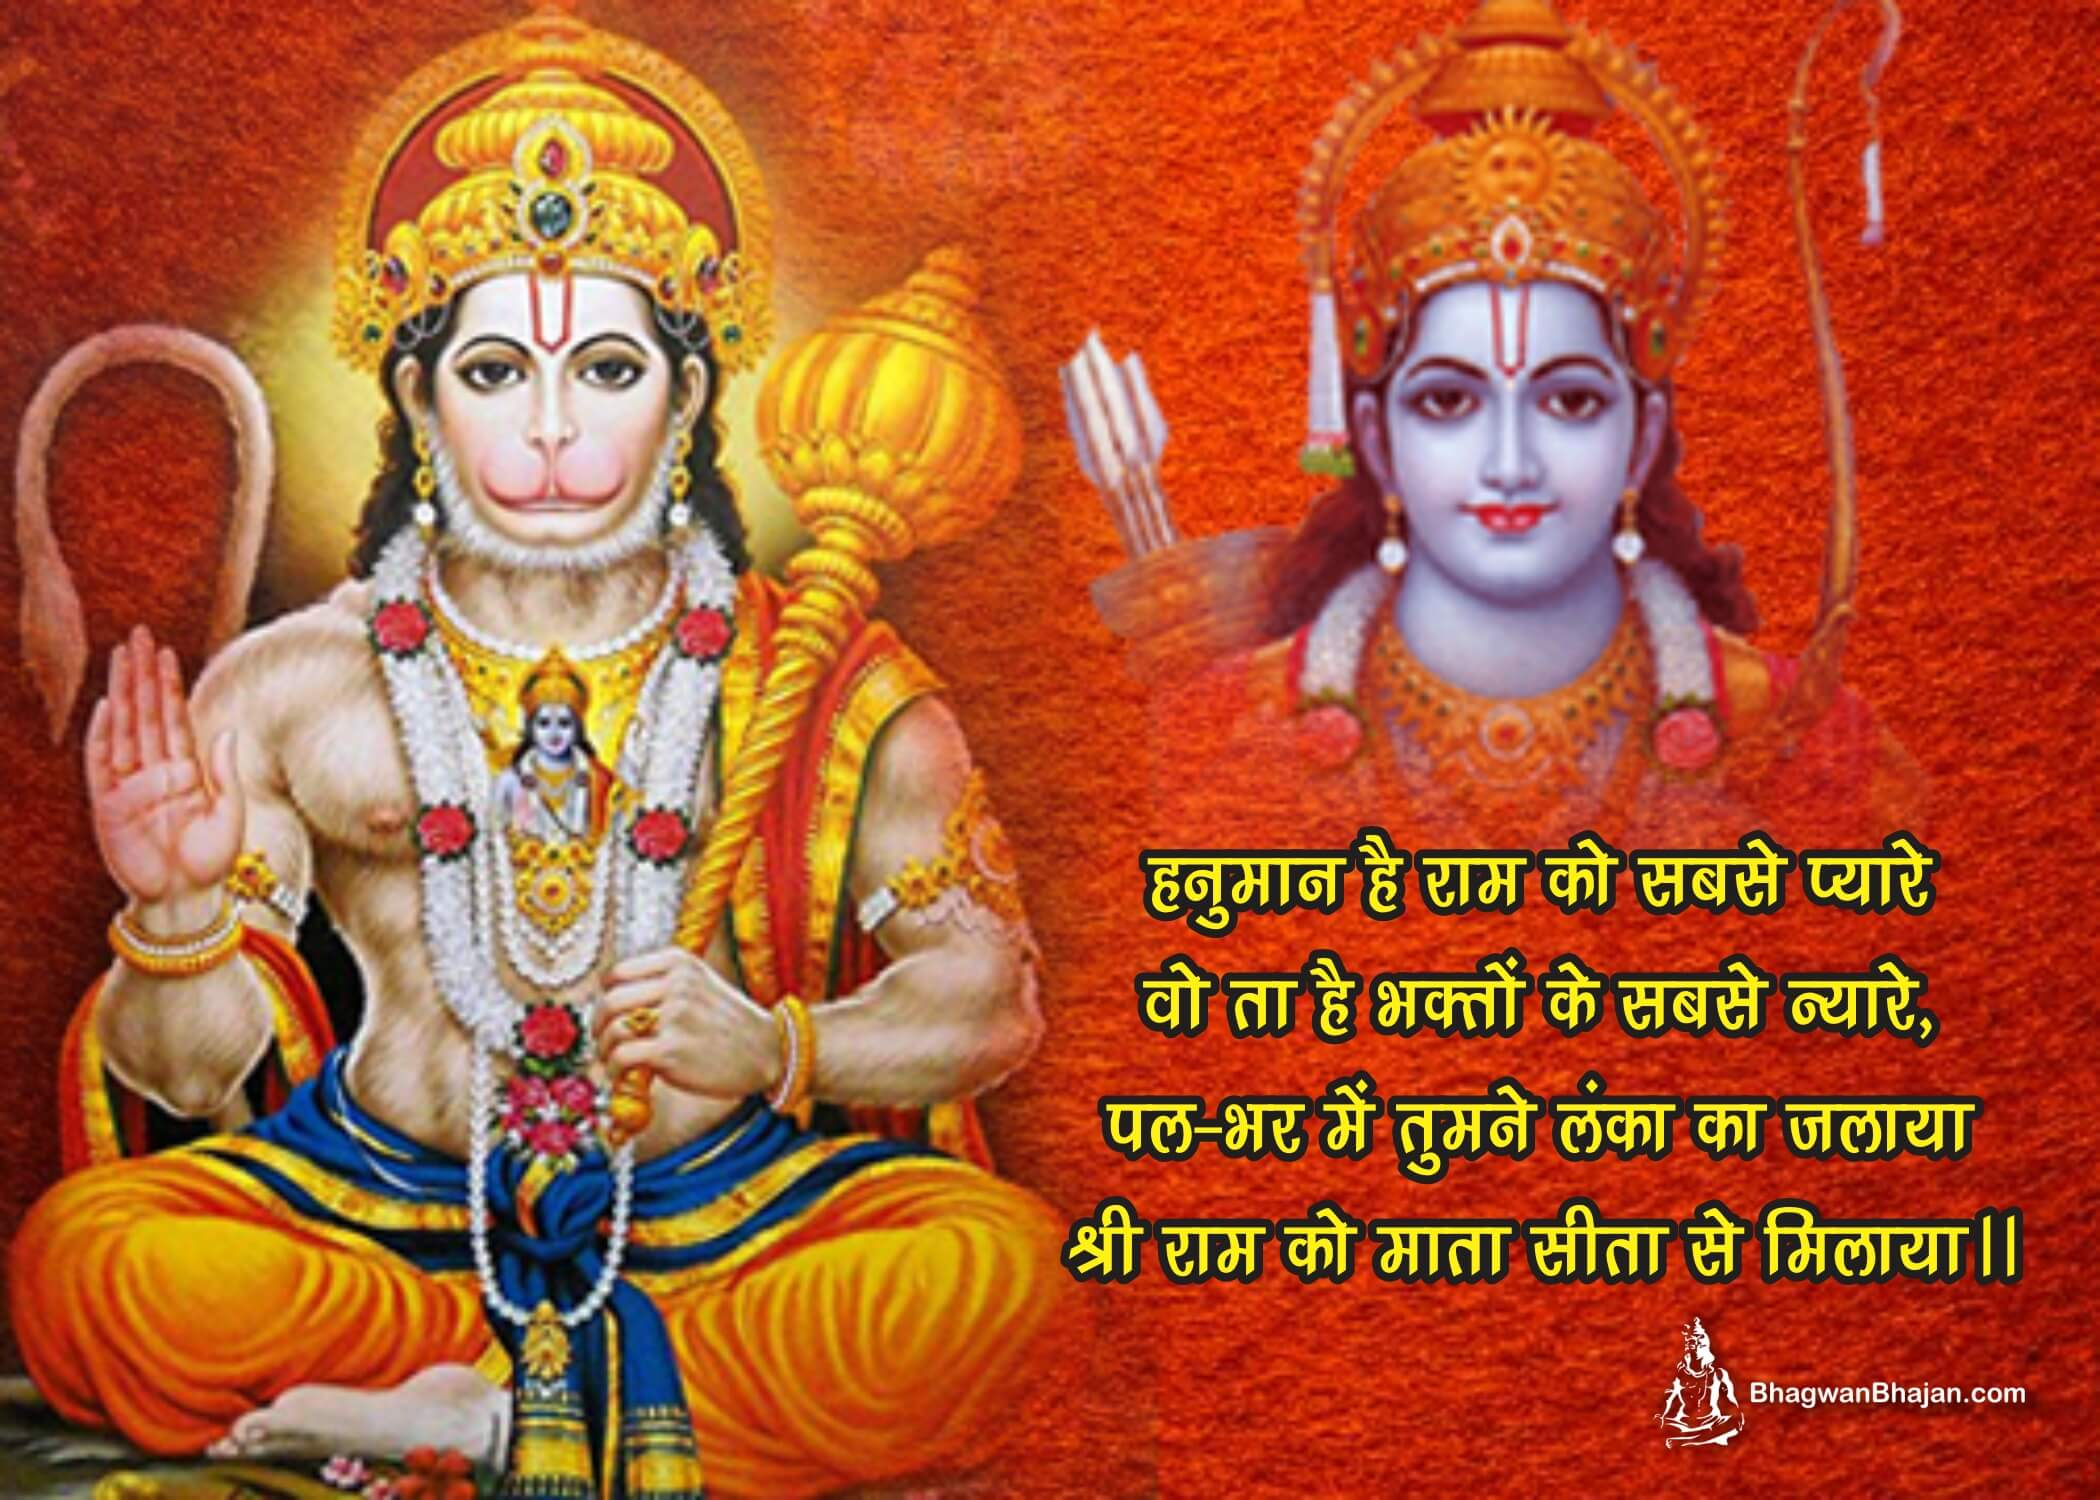 Bajrangi Hanuman whatsapp status Photos